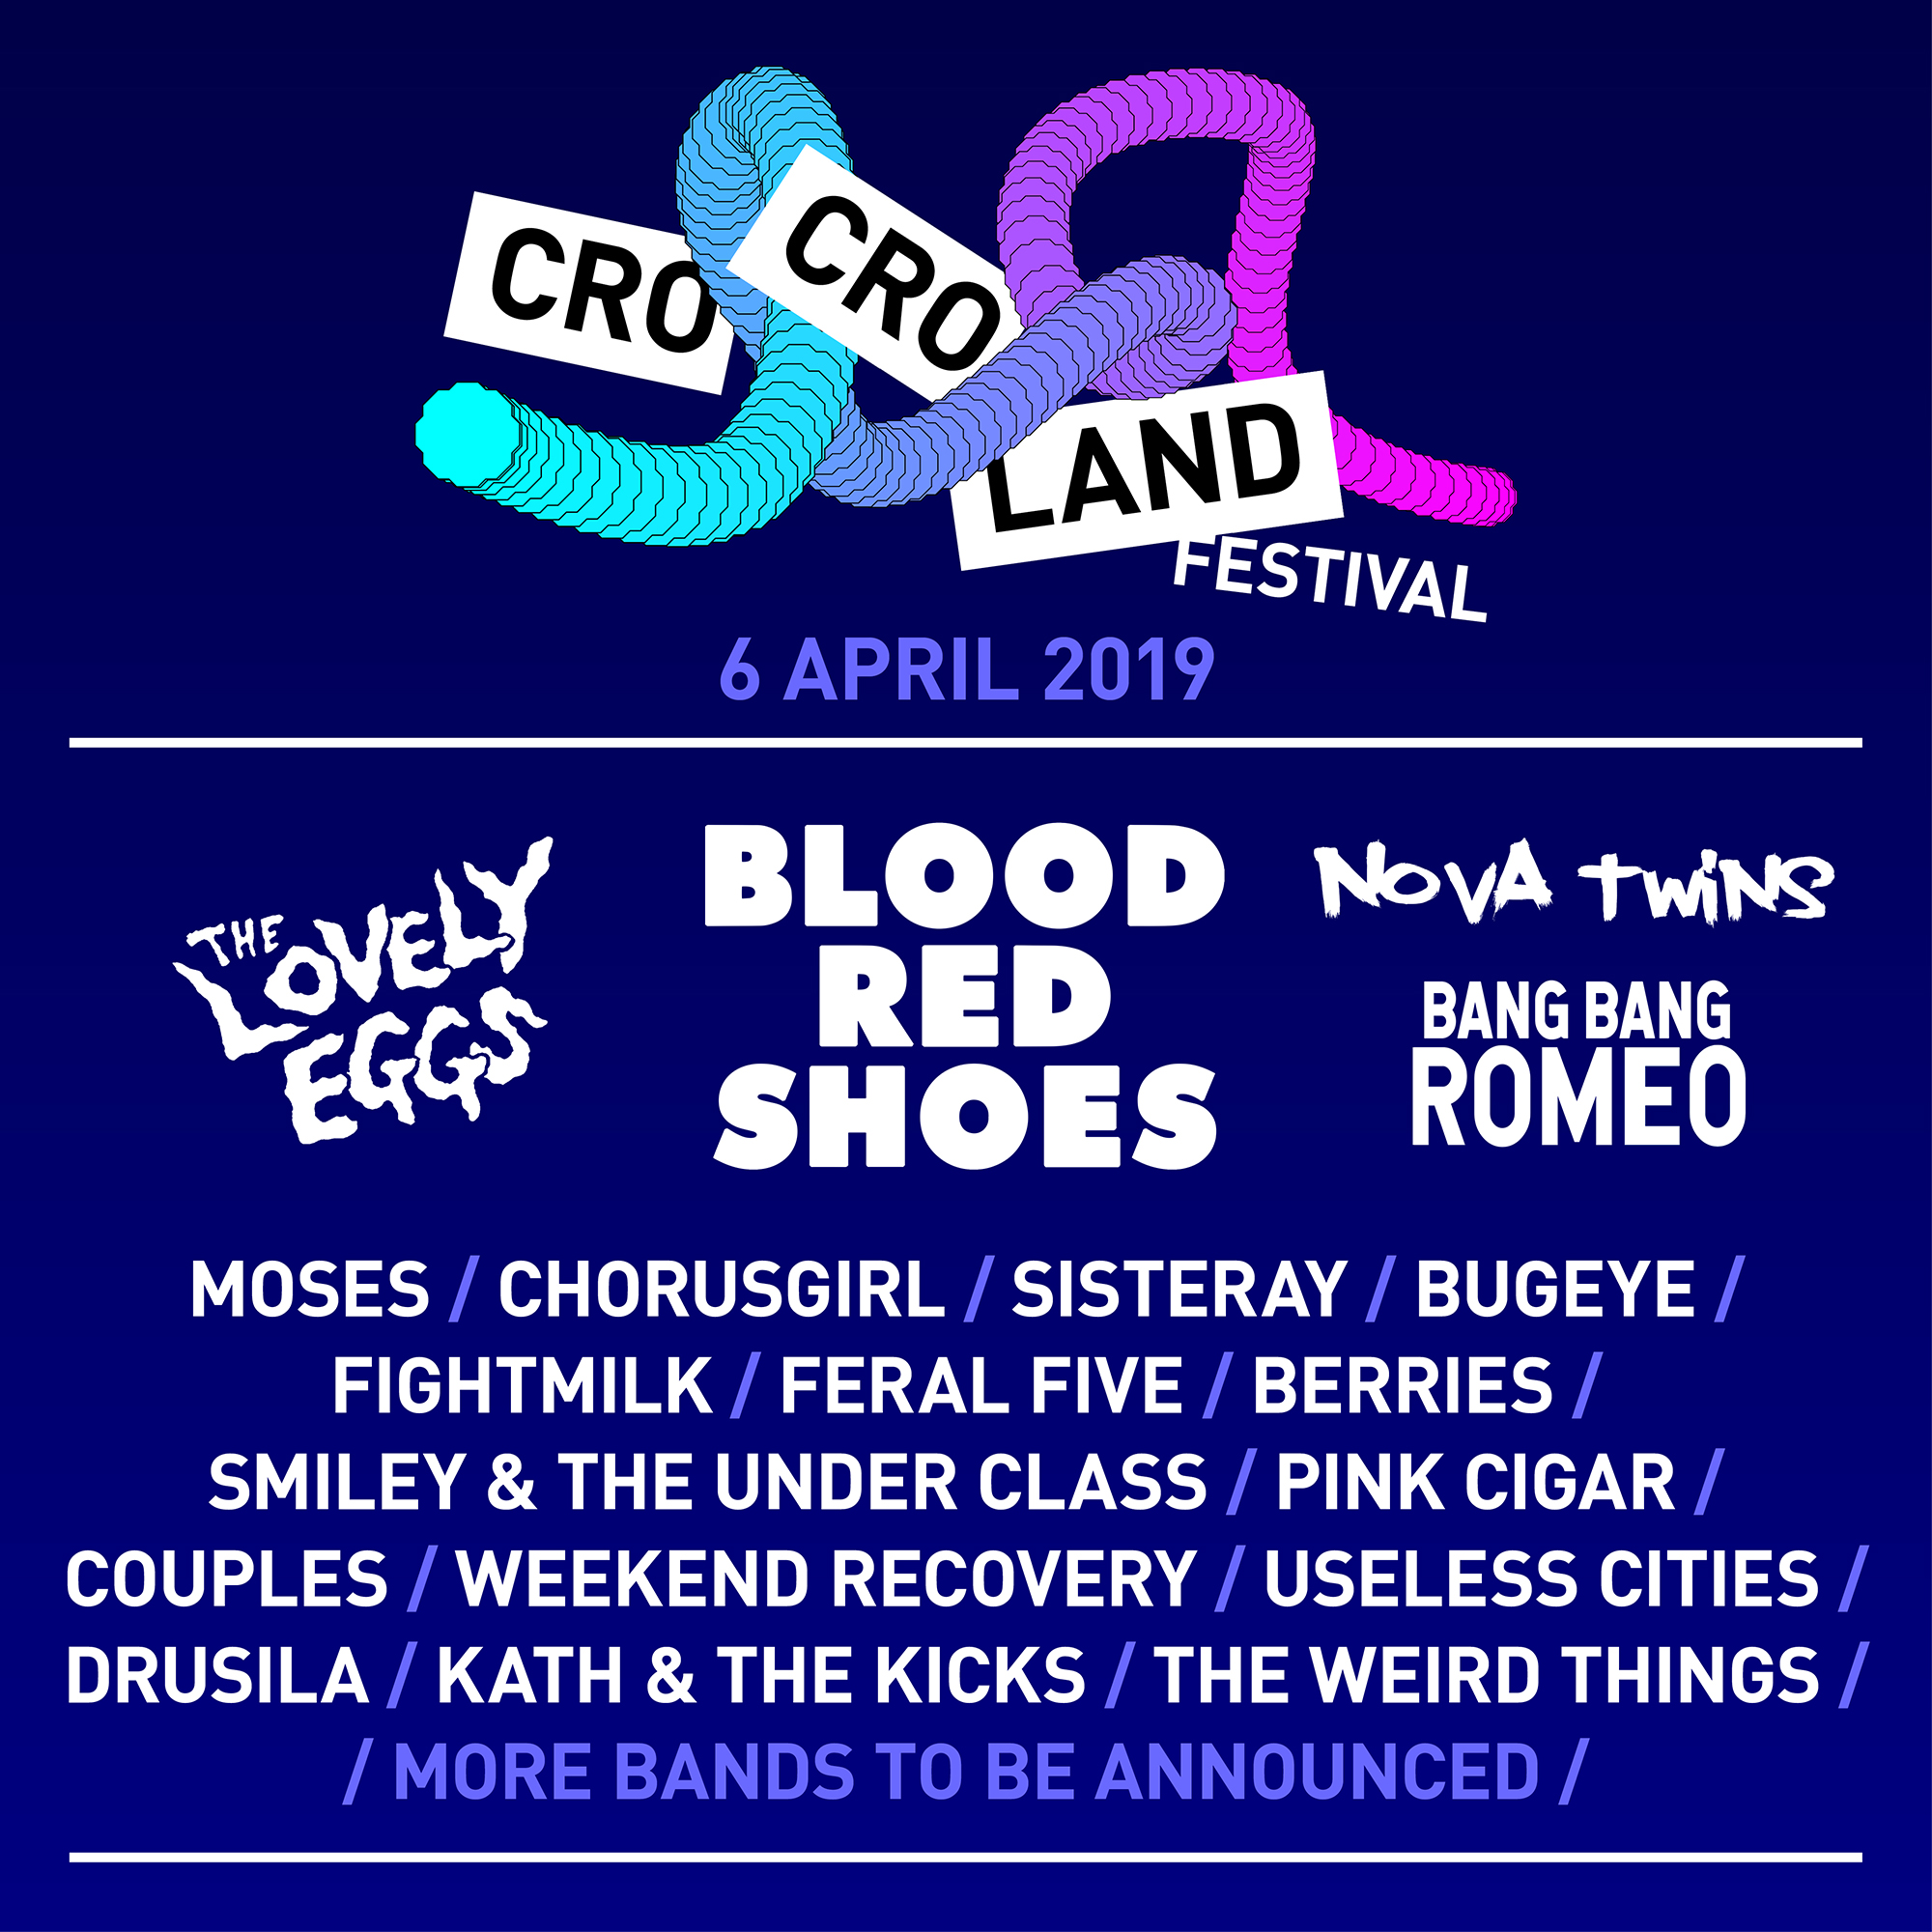 Feral Five, Cro Cro Land, Festival, new music, electro, electropunk, electronica, indie, Blood Red Shoes, The Lovely Eggs, Nova Twins, Bang Bang Romeo, Sisteray, Moses, Bugeye, Fightmilk